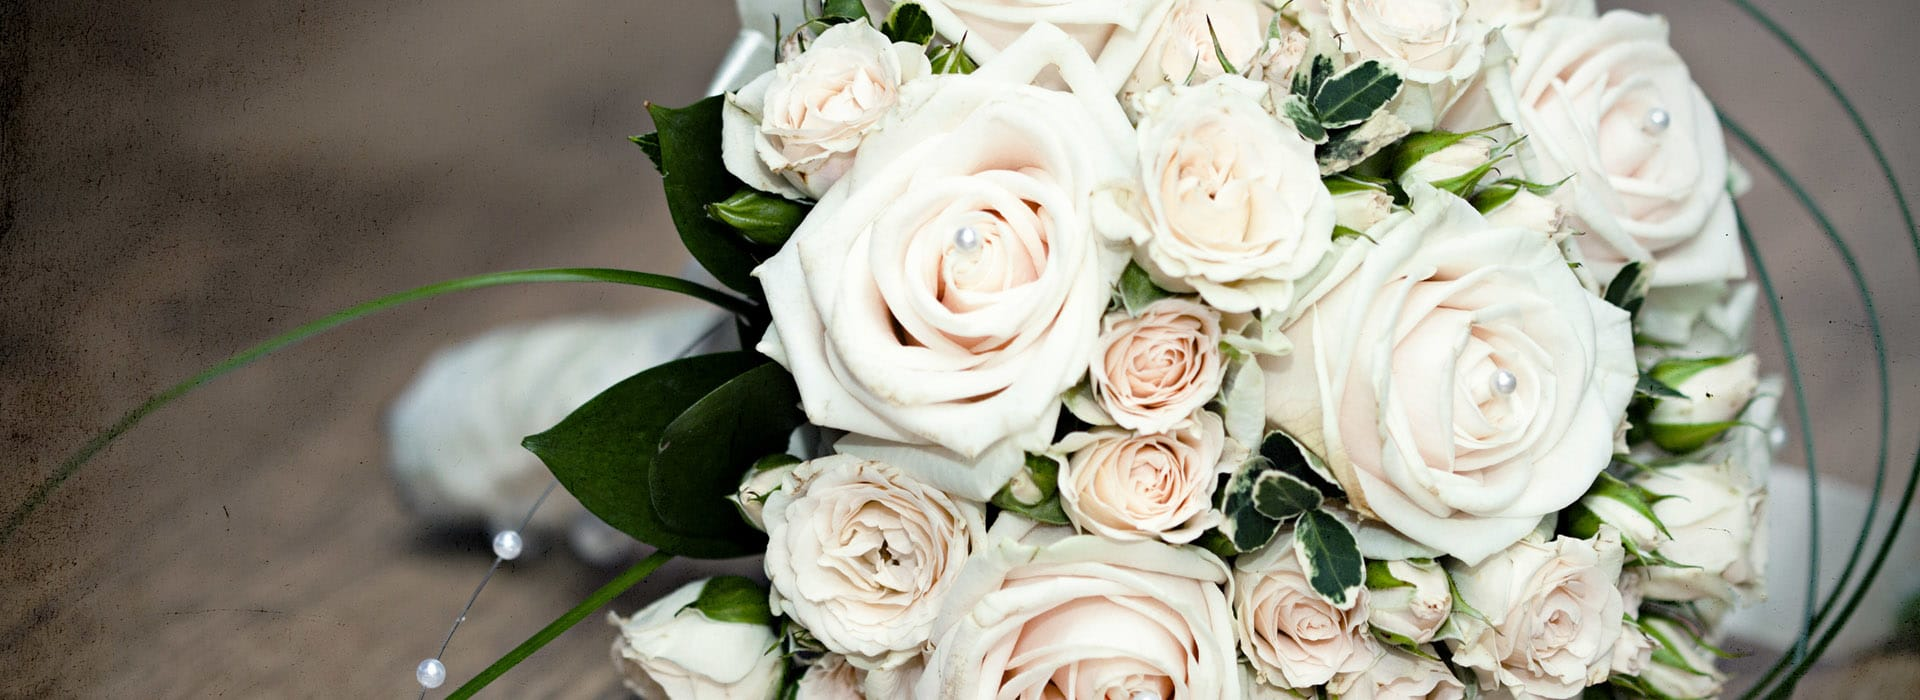 A wedding bouquet of whites roses